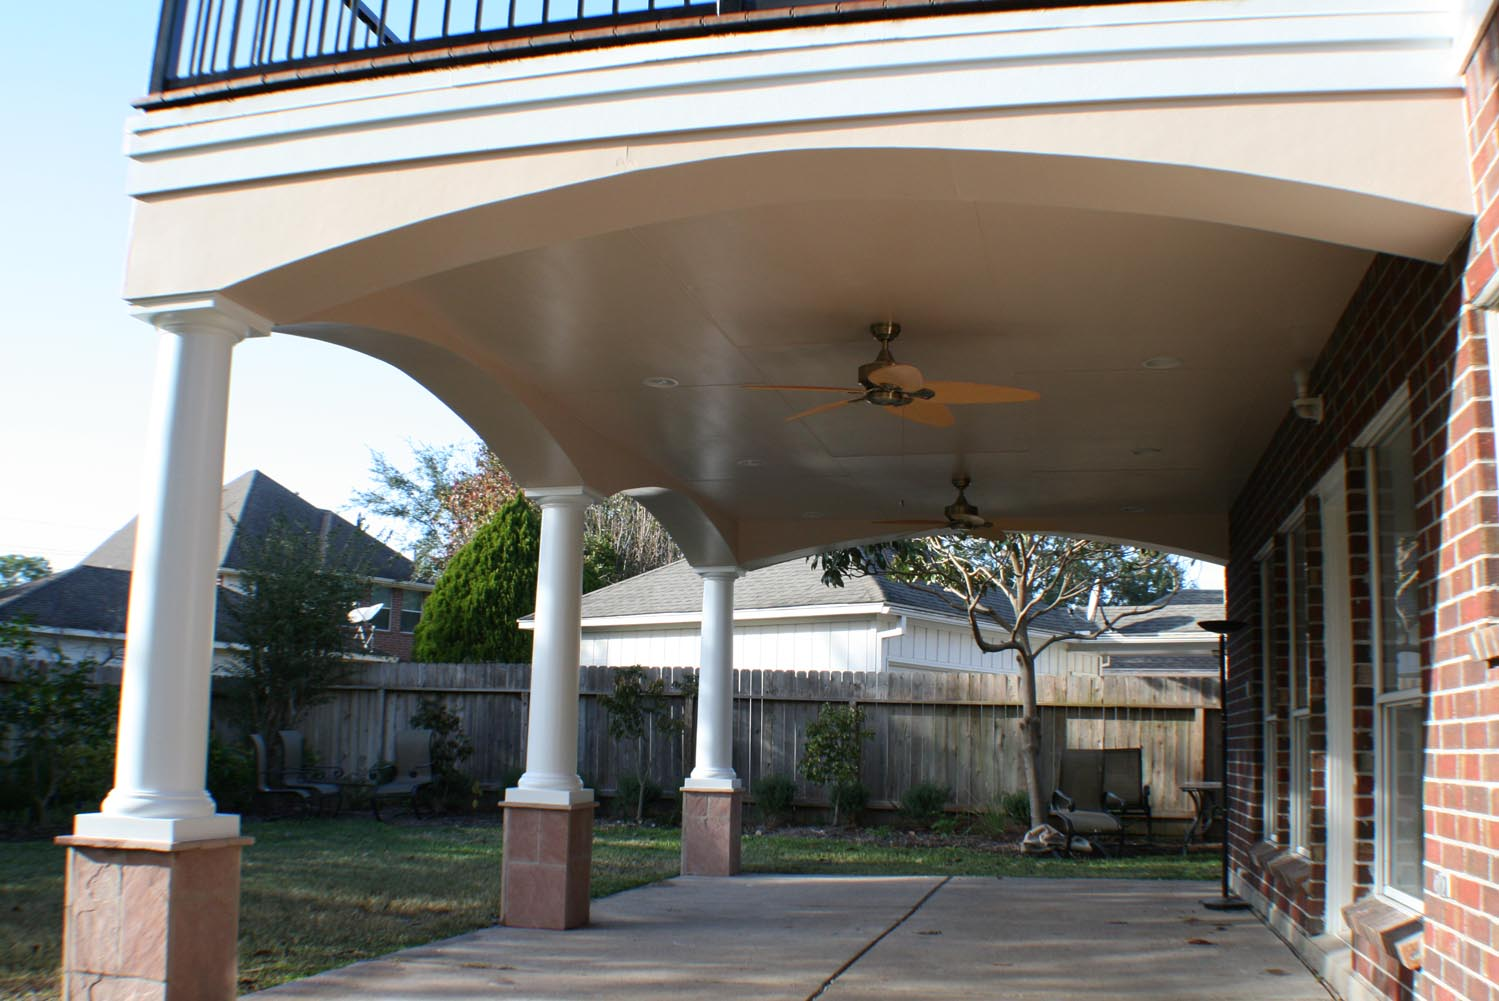 Patio Cover with Upper Deck - HHI Patio Covers